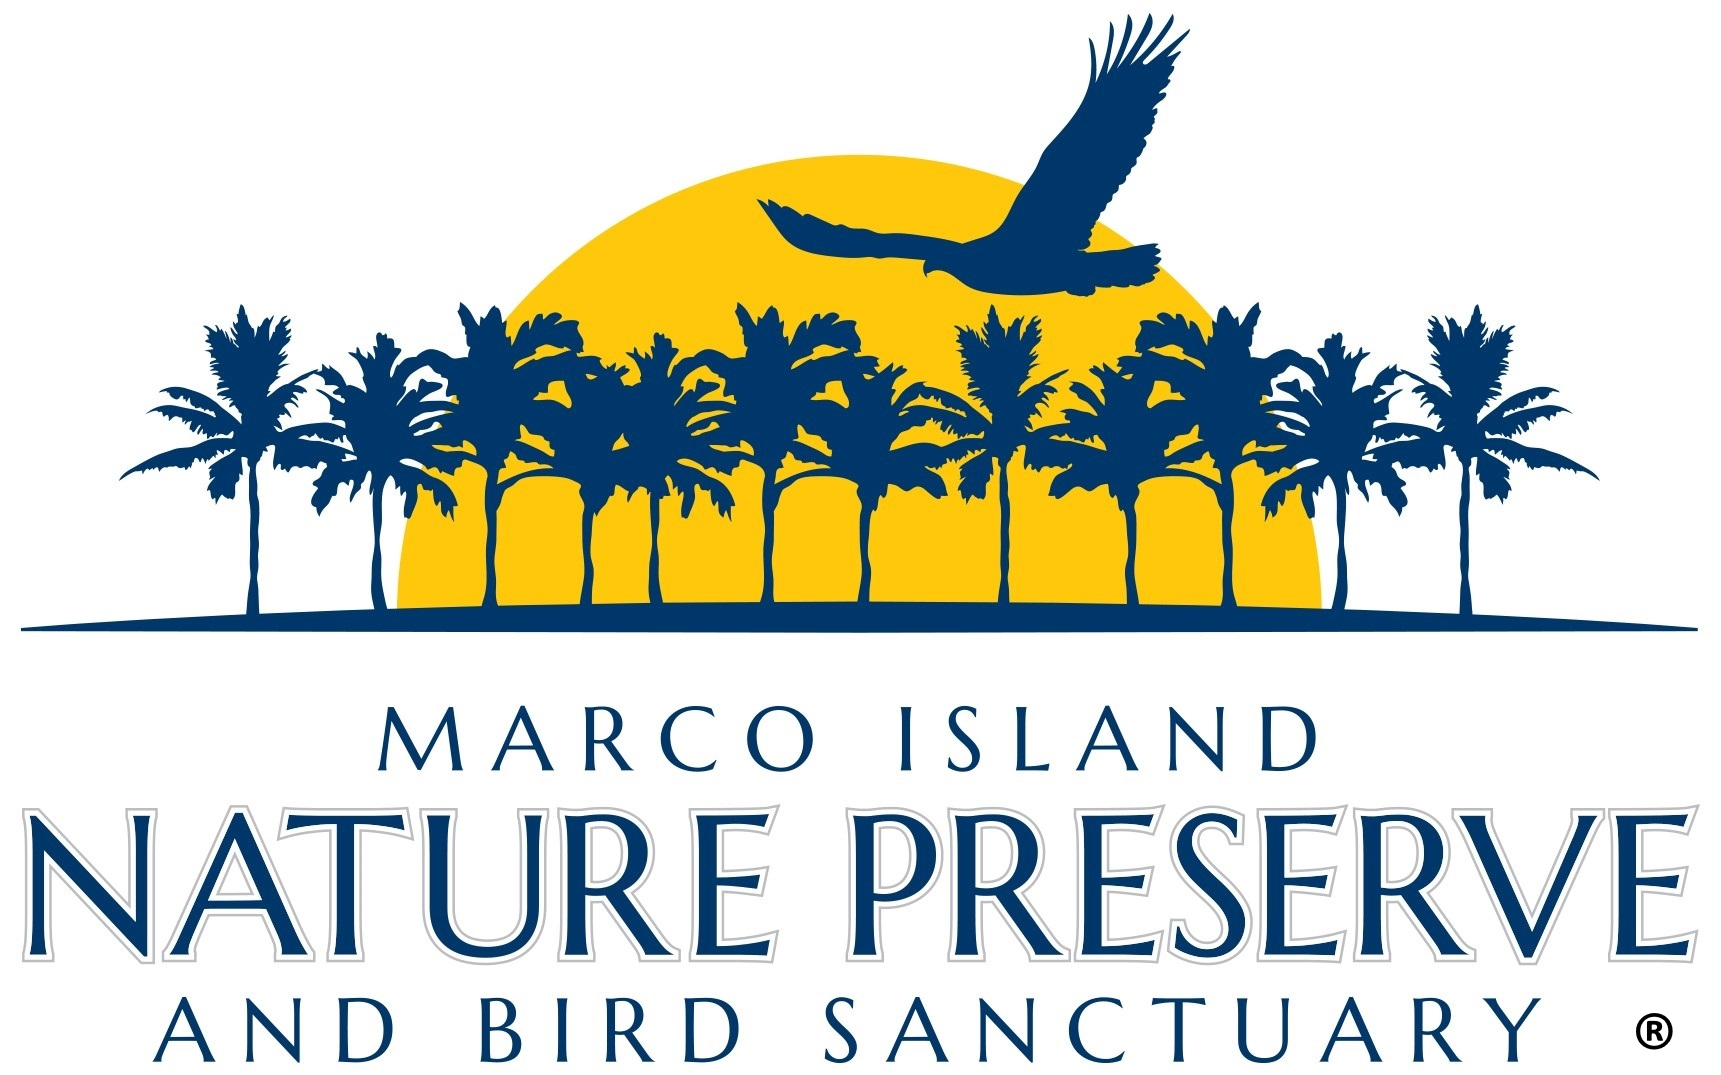 Marco Island Nature Preserve and Bird Sanctuary